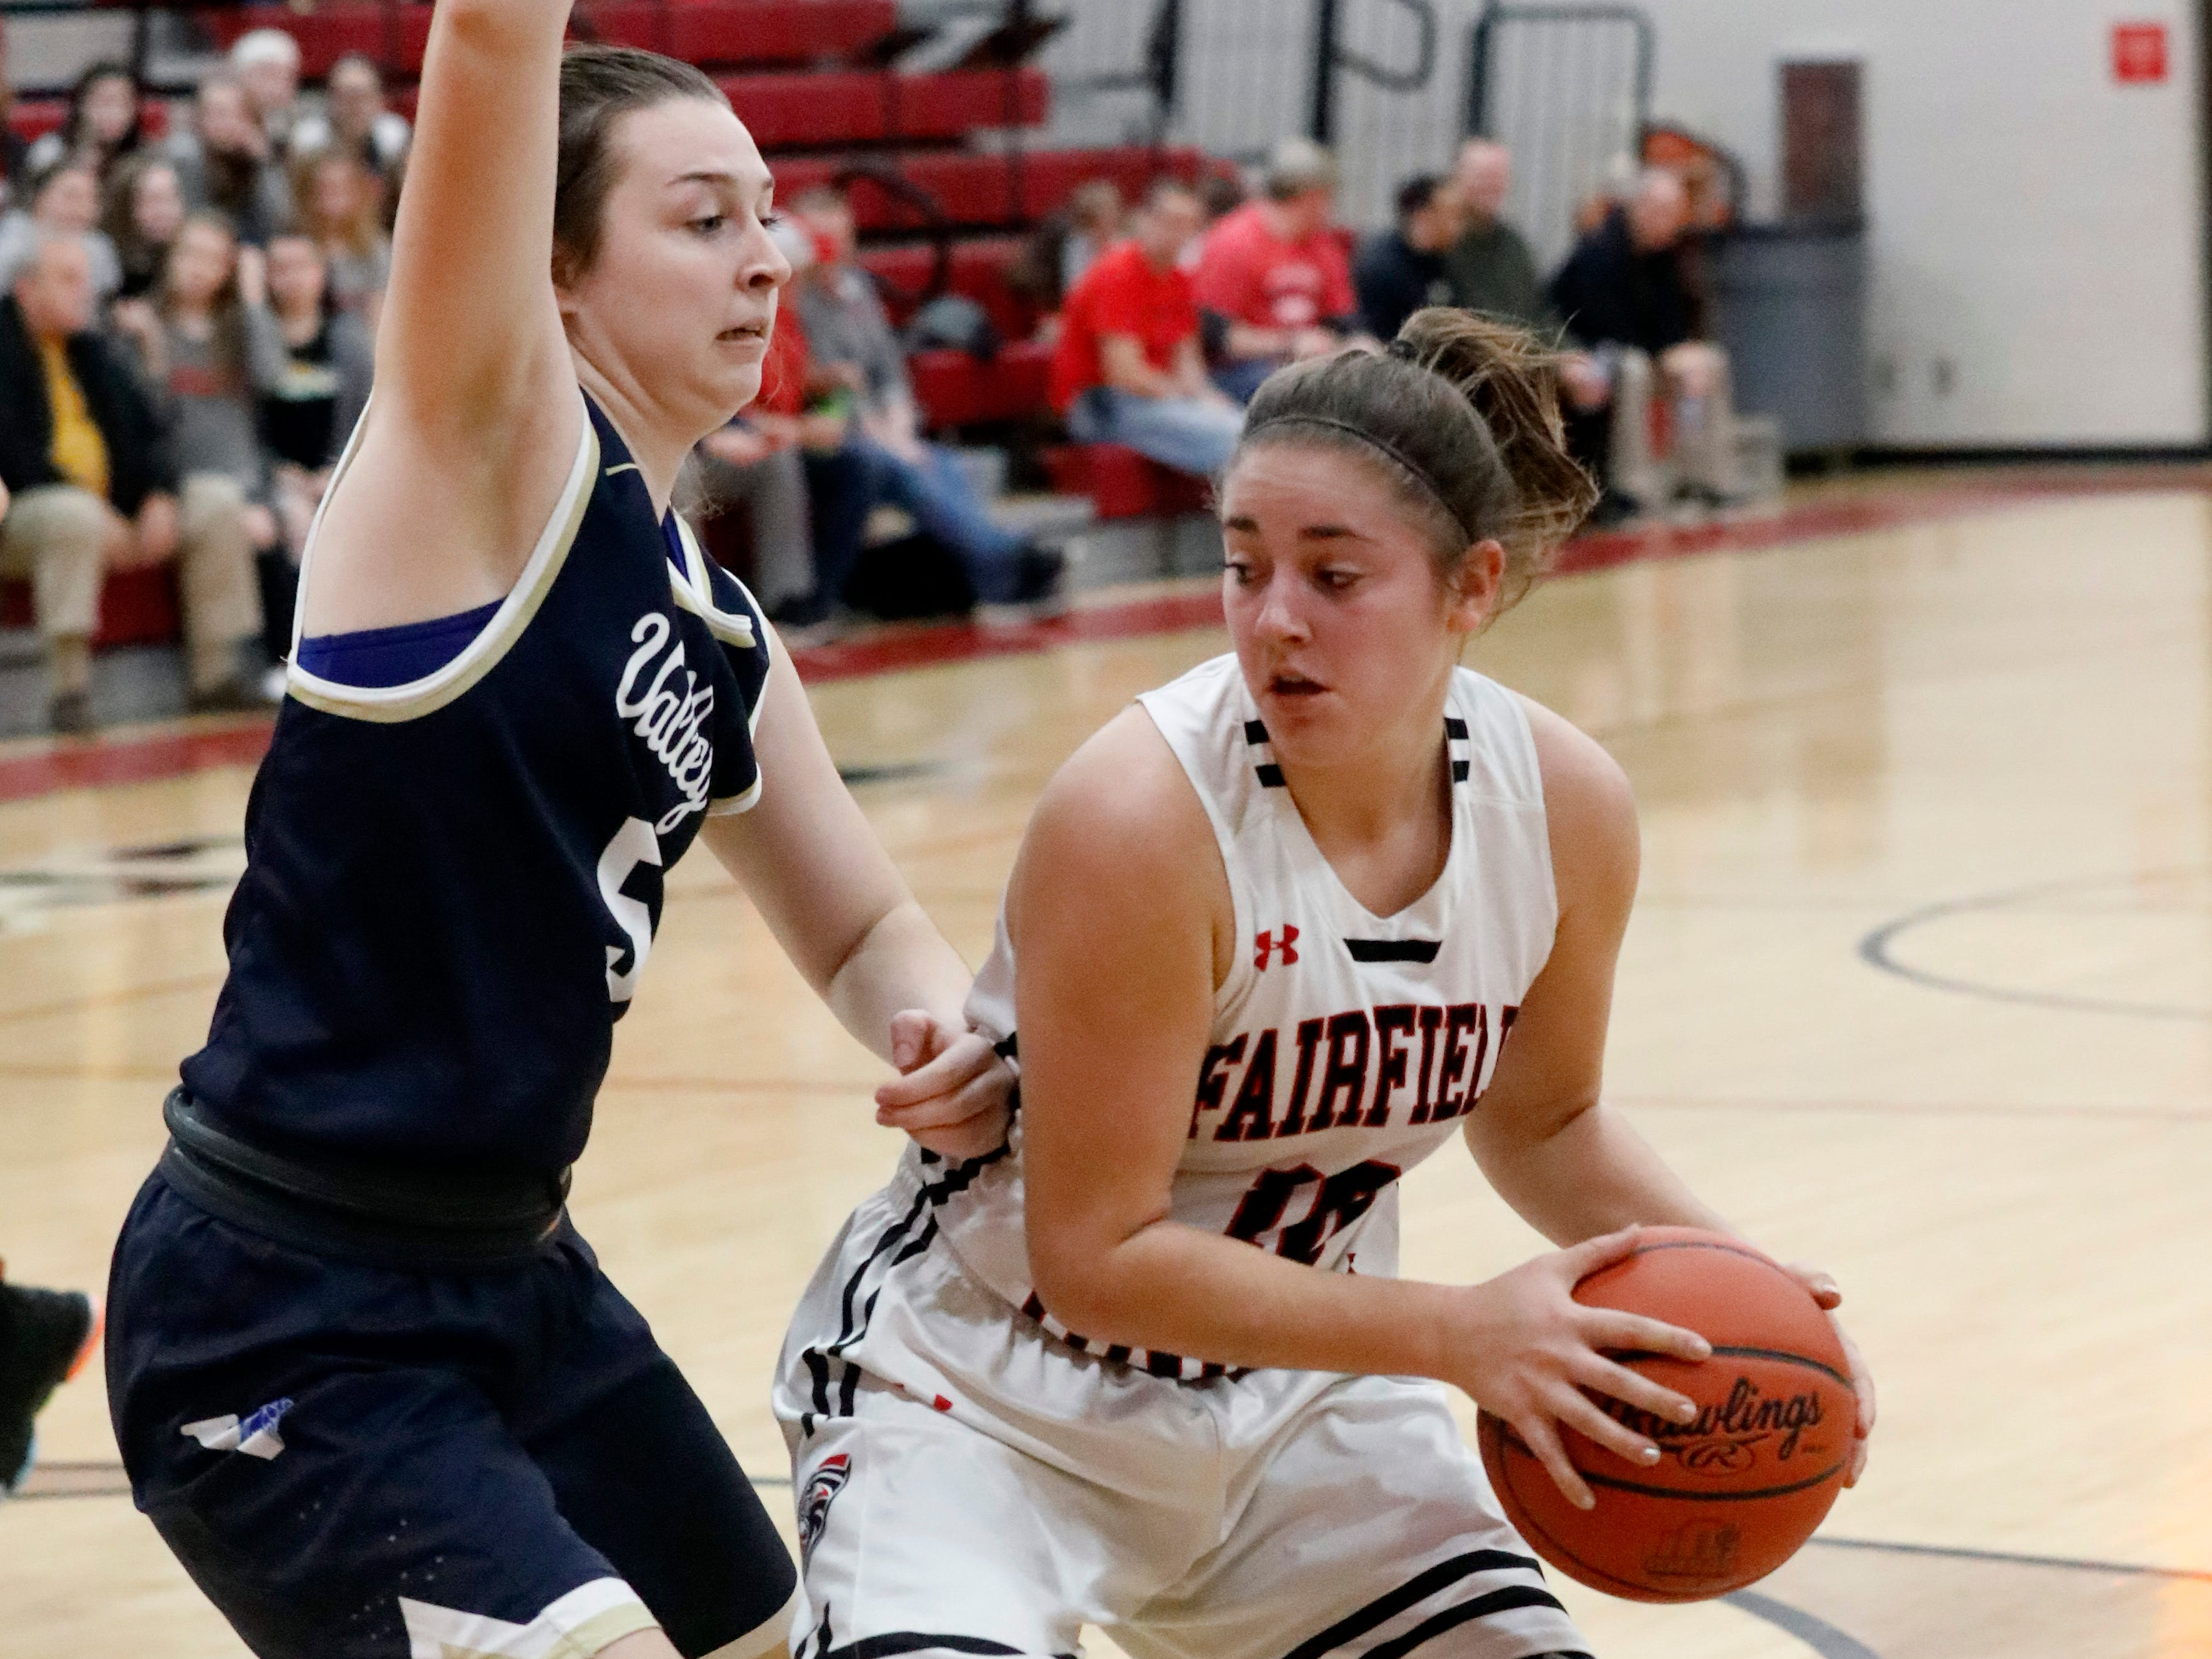 Fairfield Union's Hannah Burnside pivots during Friday night's game, Jan. 25, 2019, against Teays Valley at Fairfield Union High School in Rushville. The Falcons lost the game 67-42.